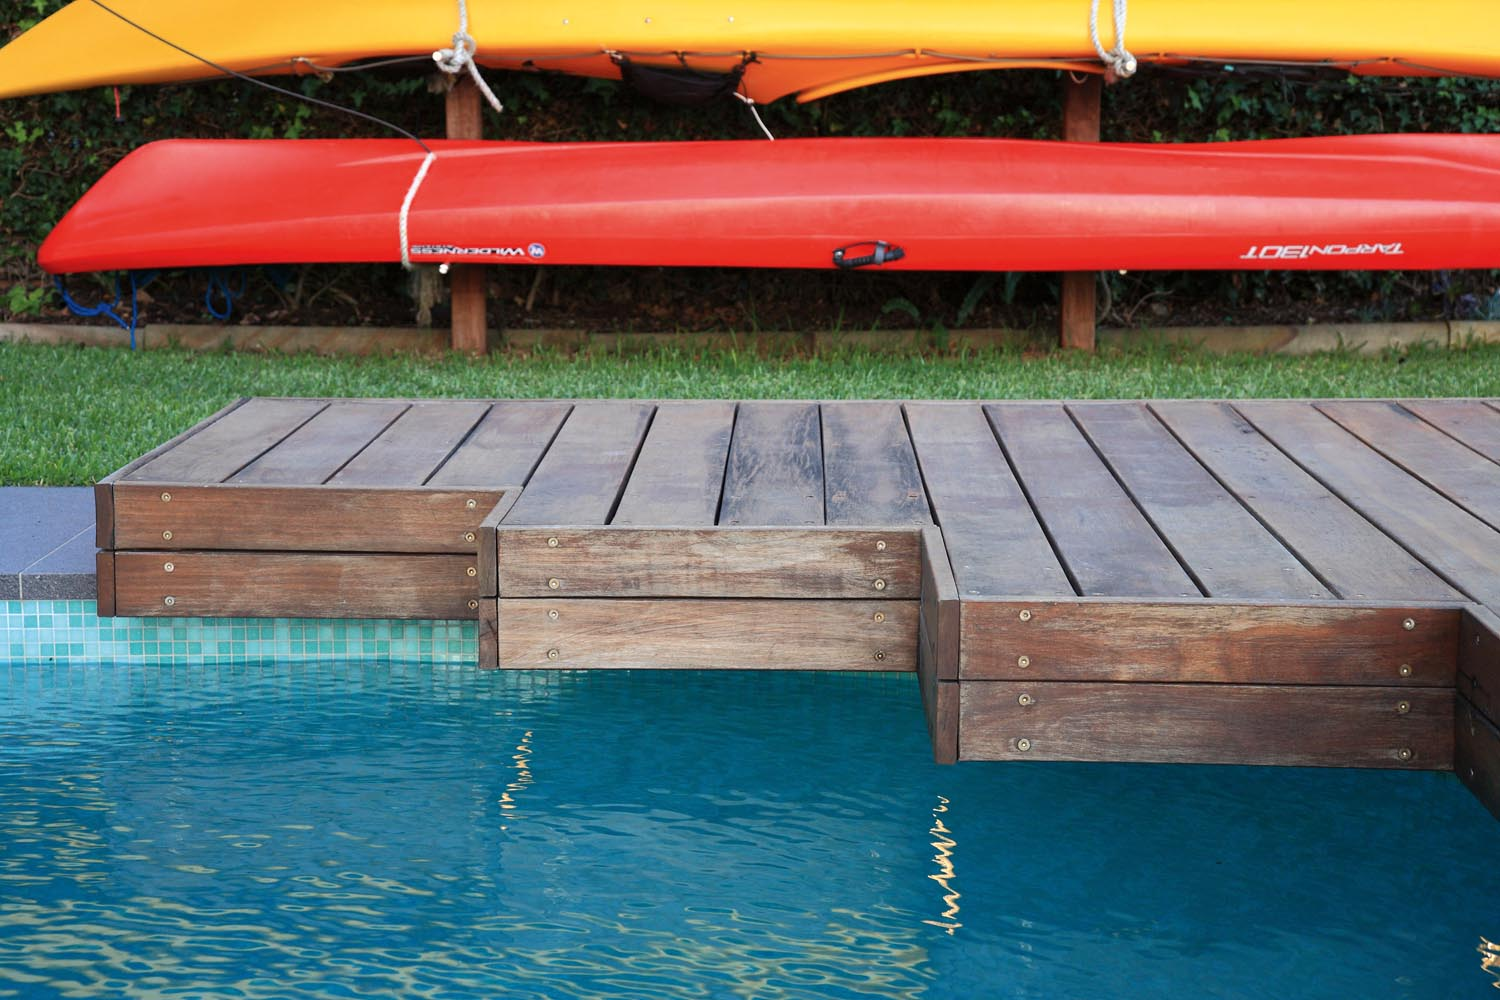 Pool corner with wooden platform and a red kayak